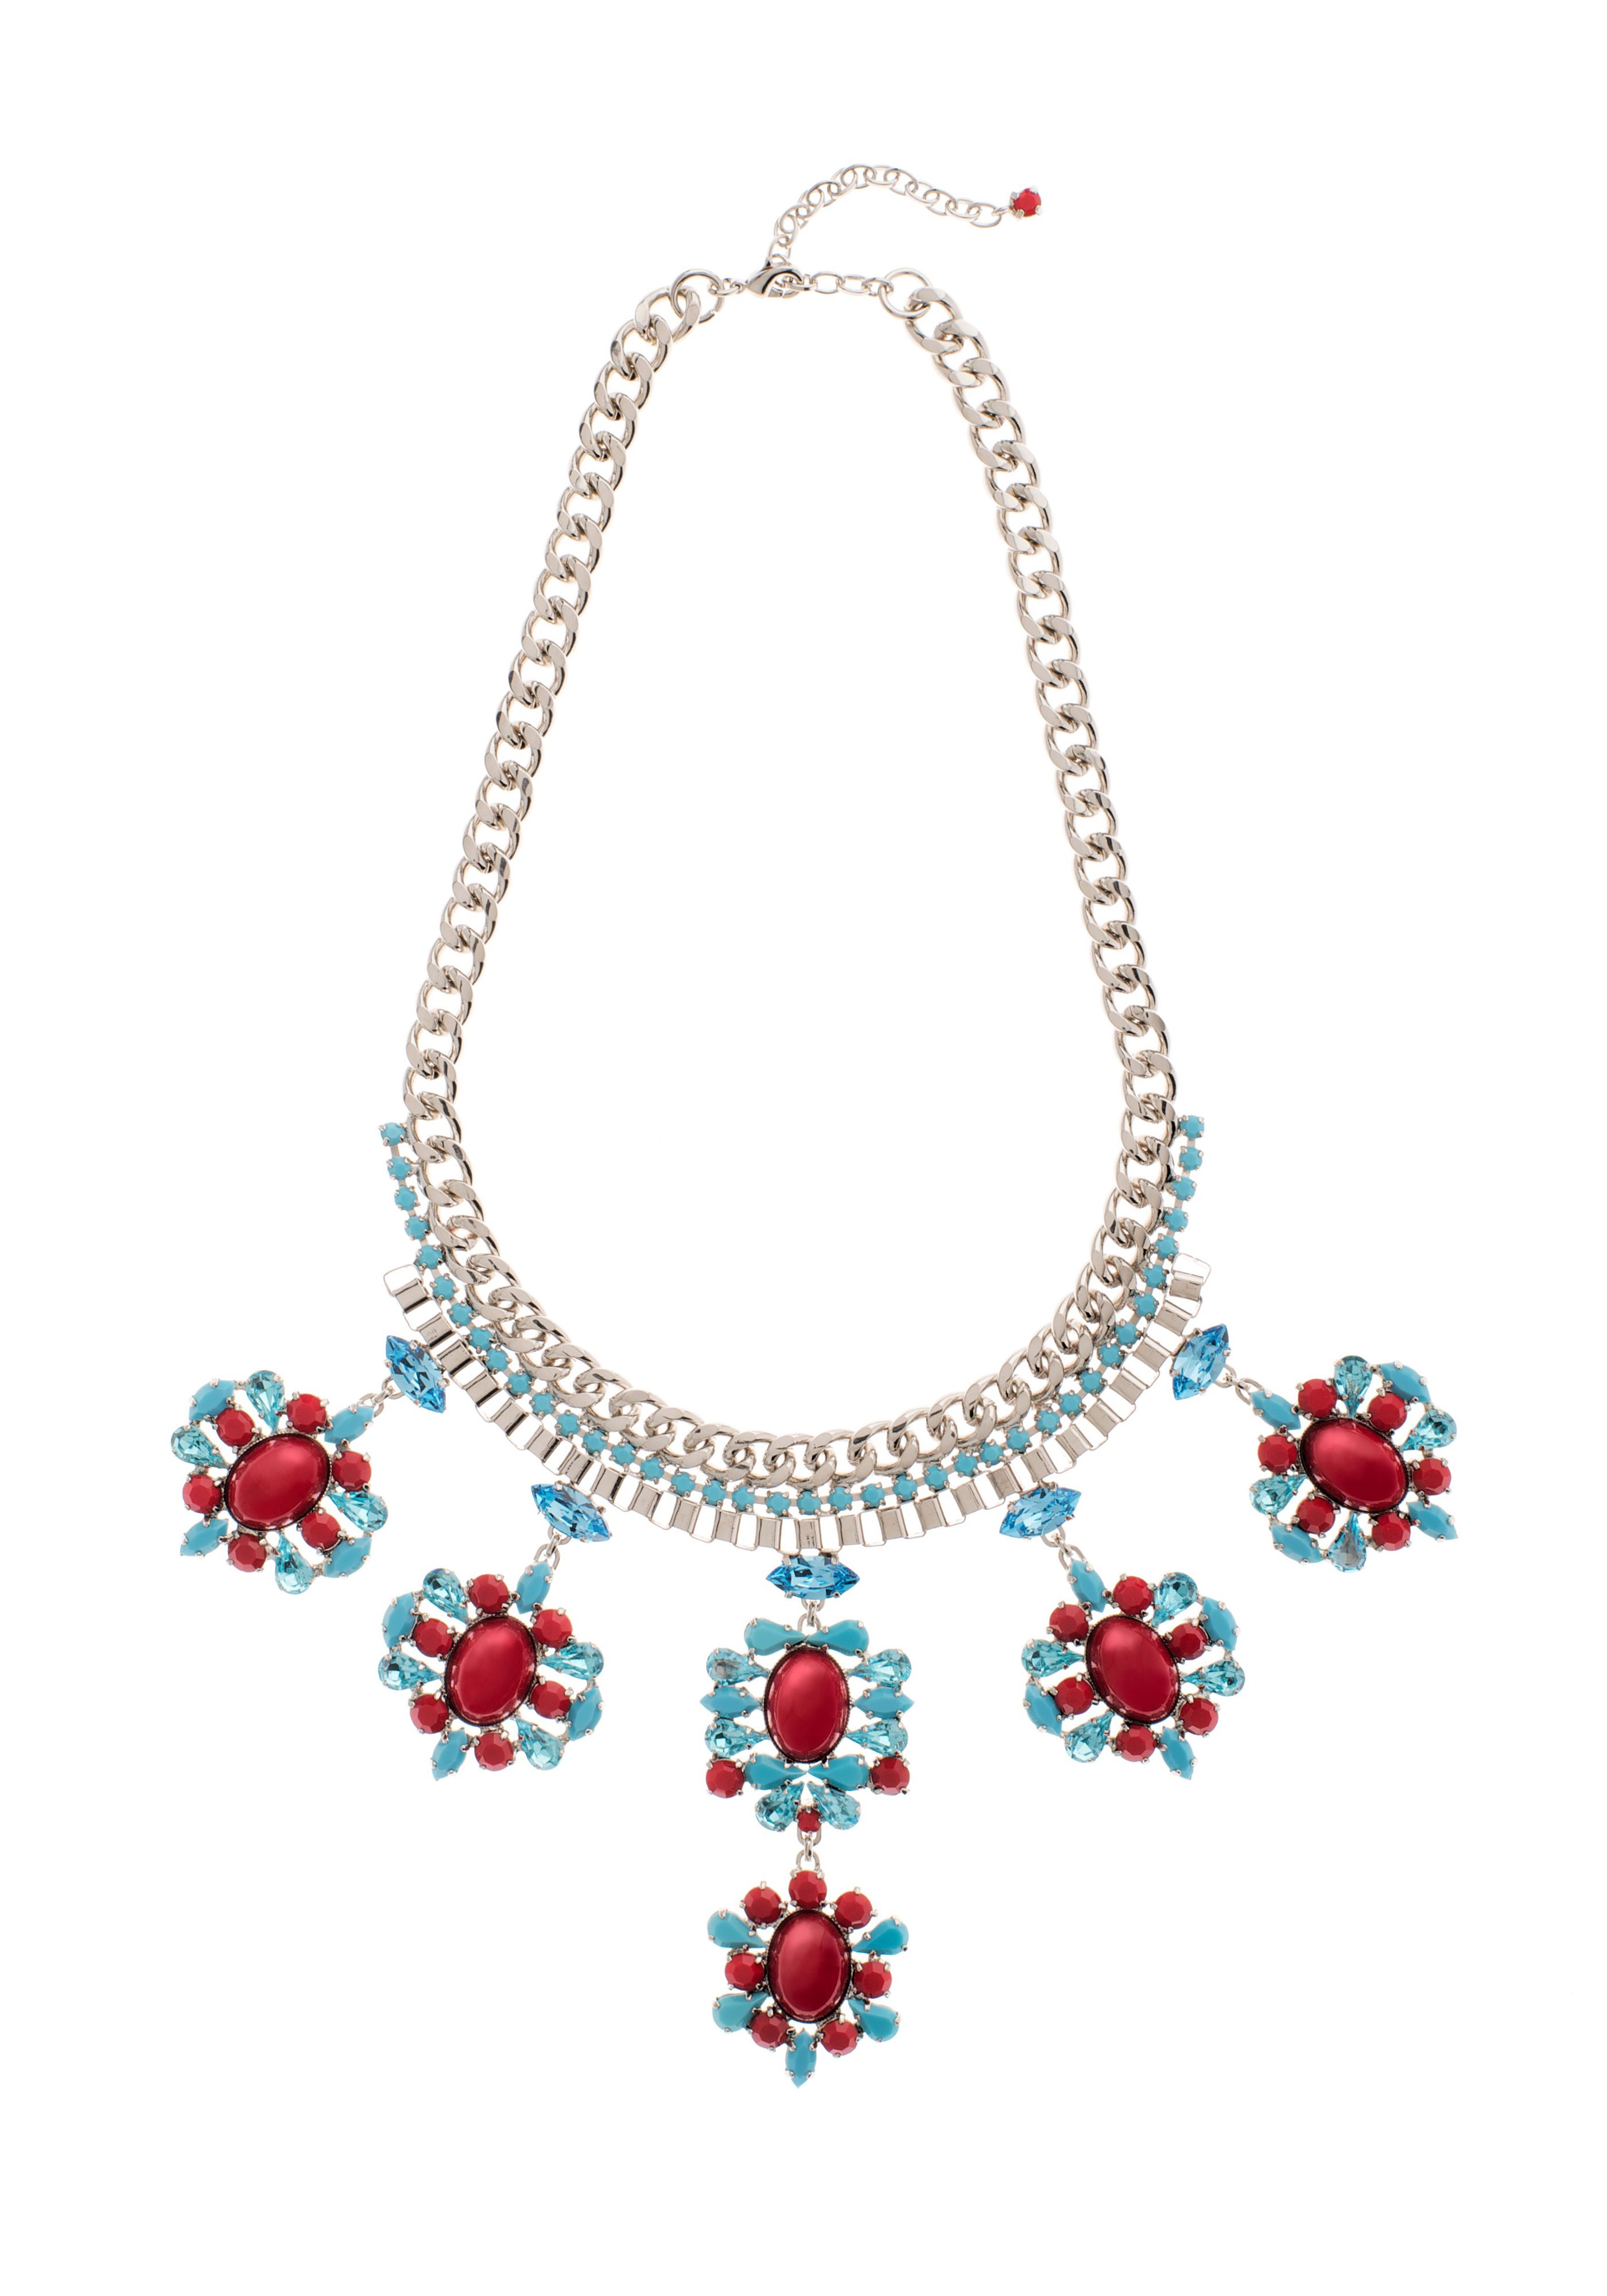 Opulent blue & red statement necklace